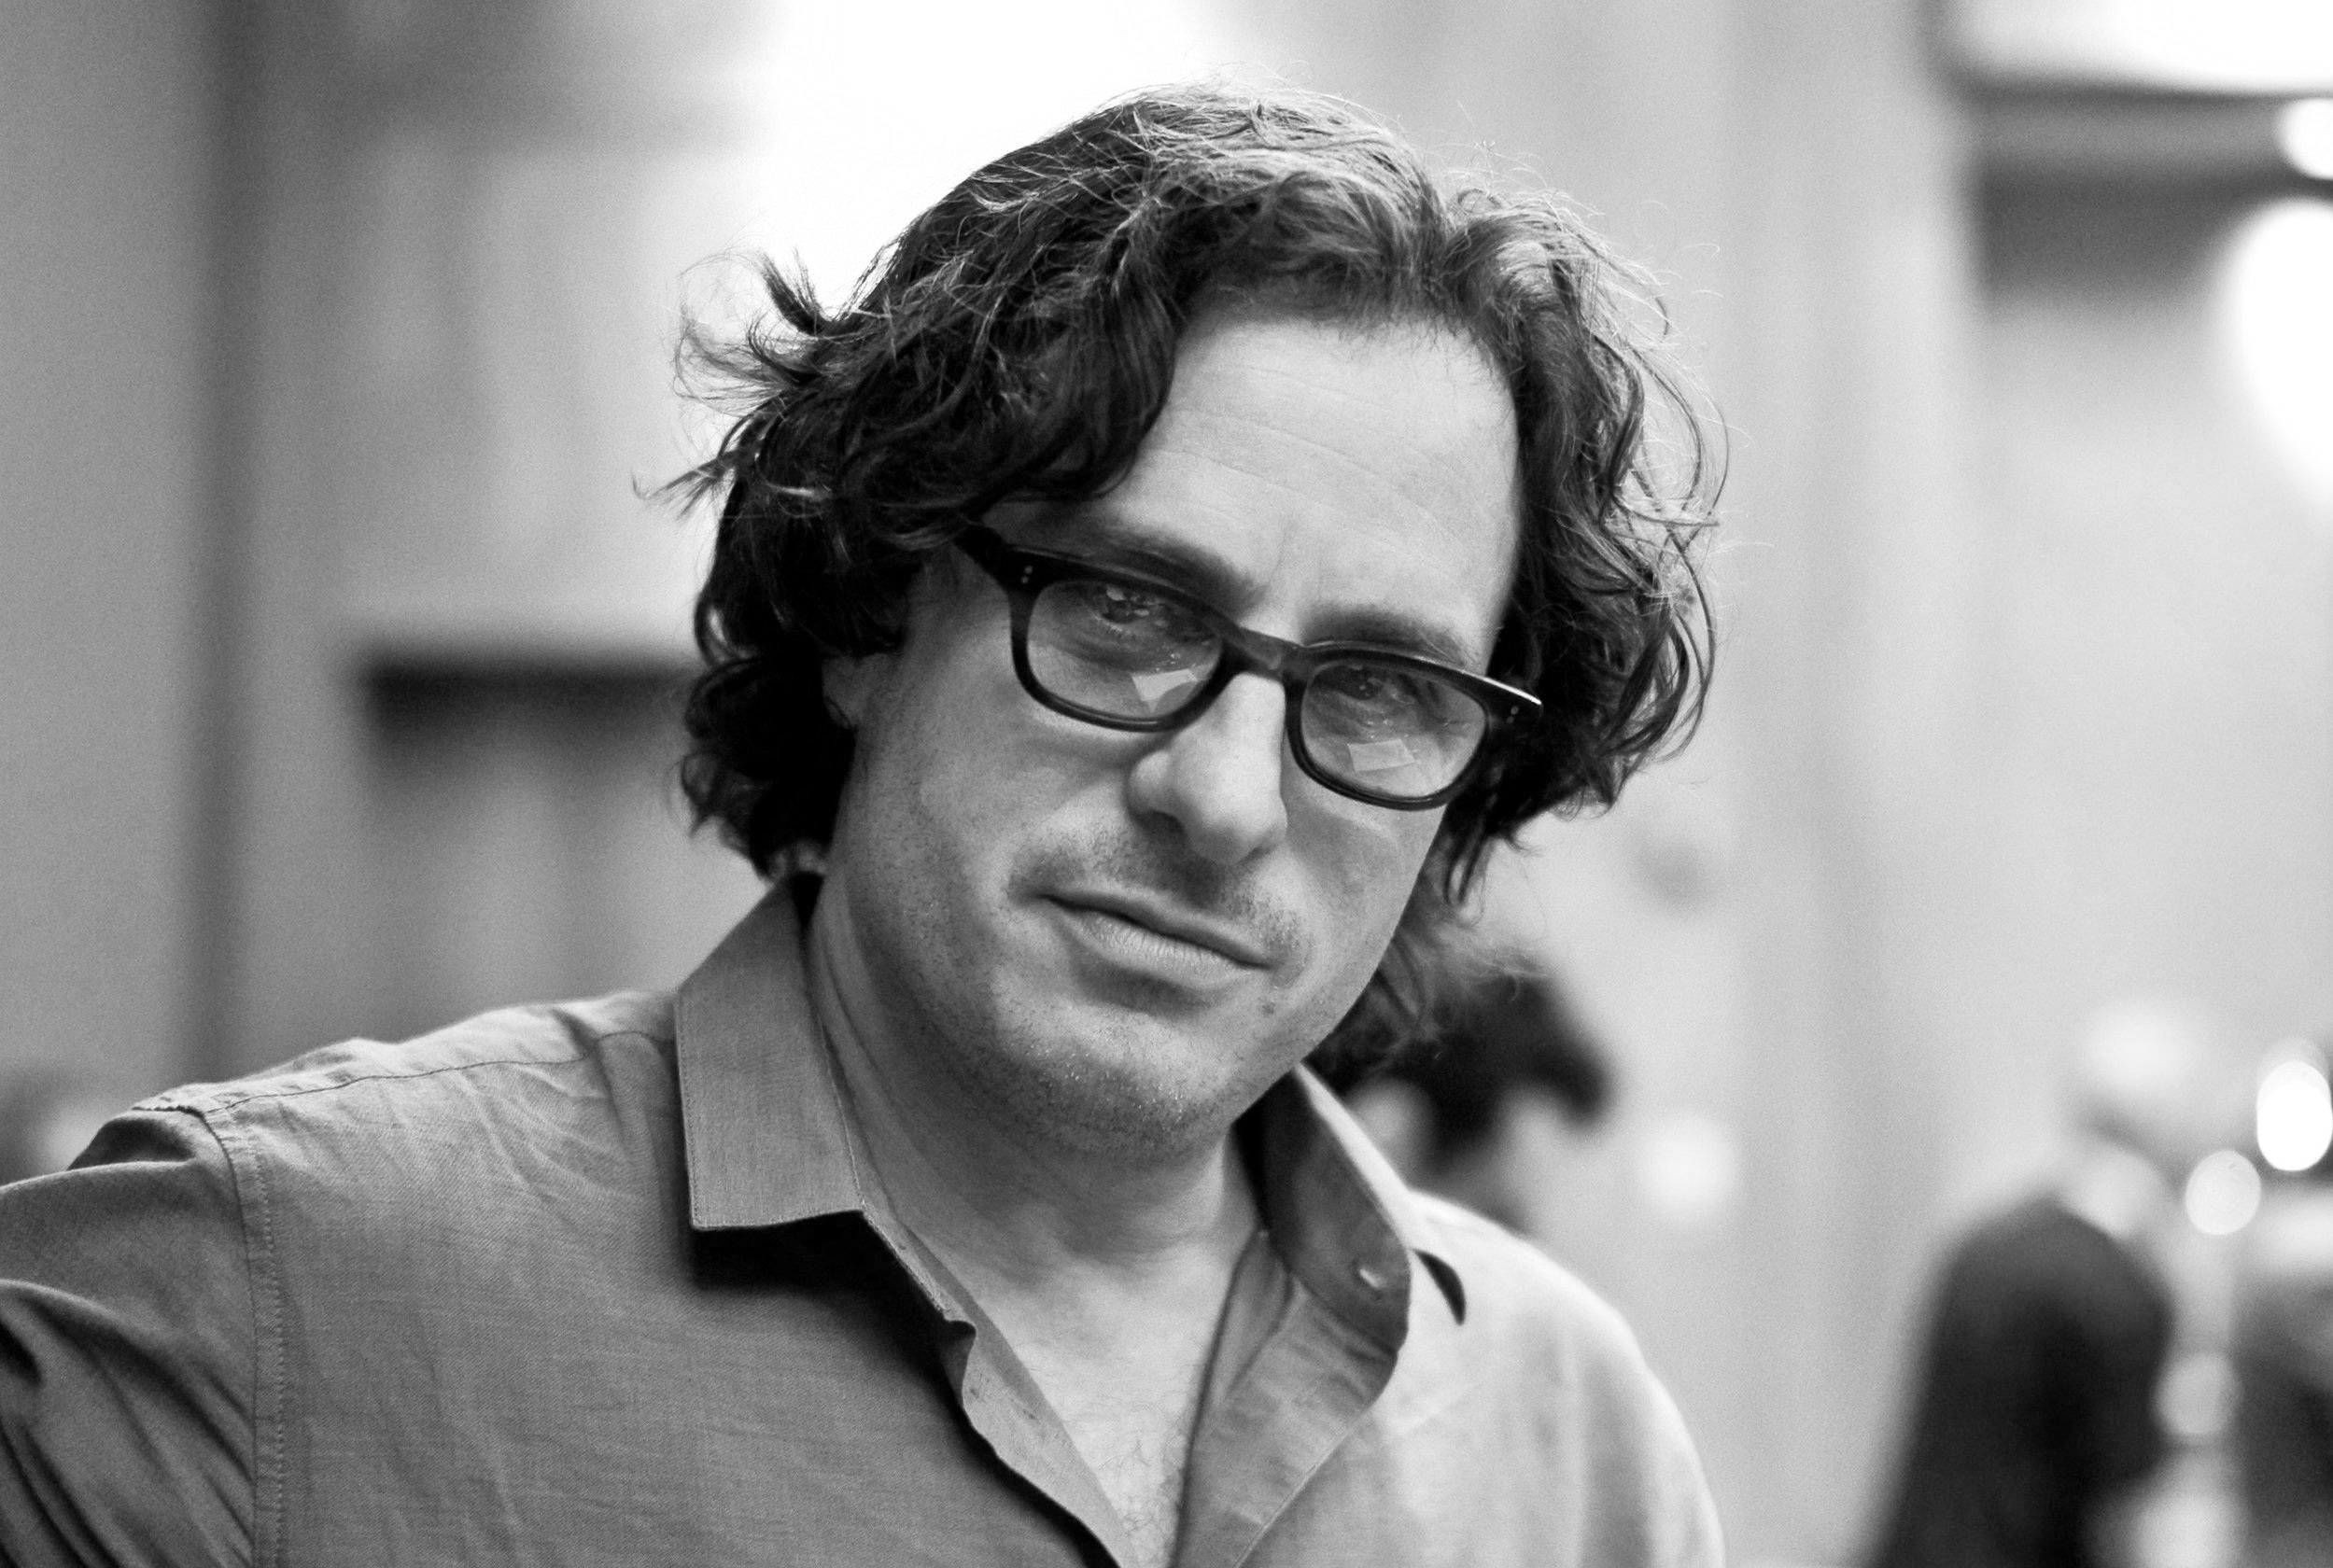 Davis Guggenheim - Film director